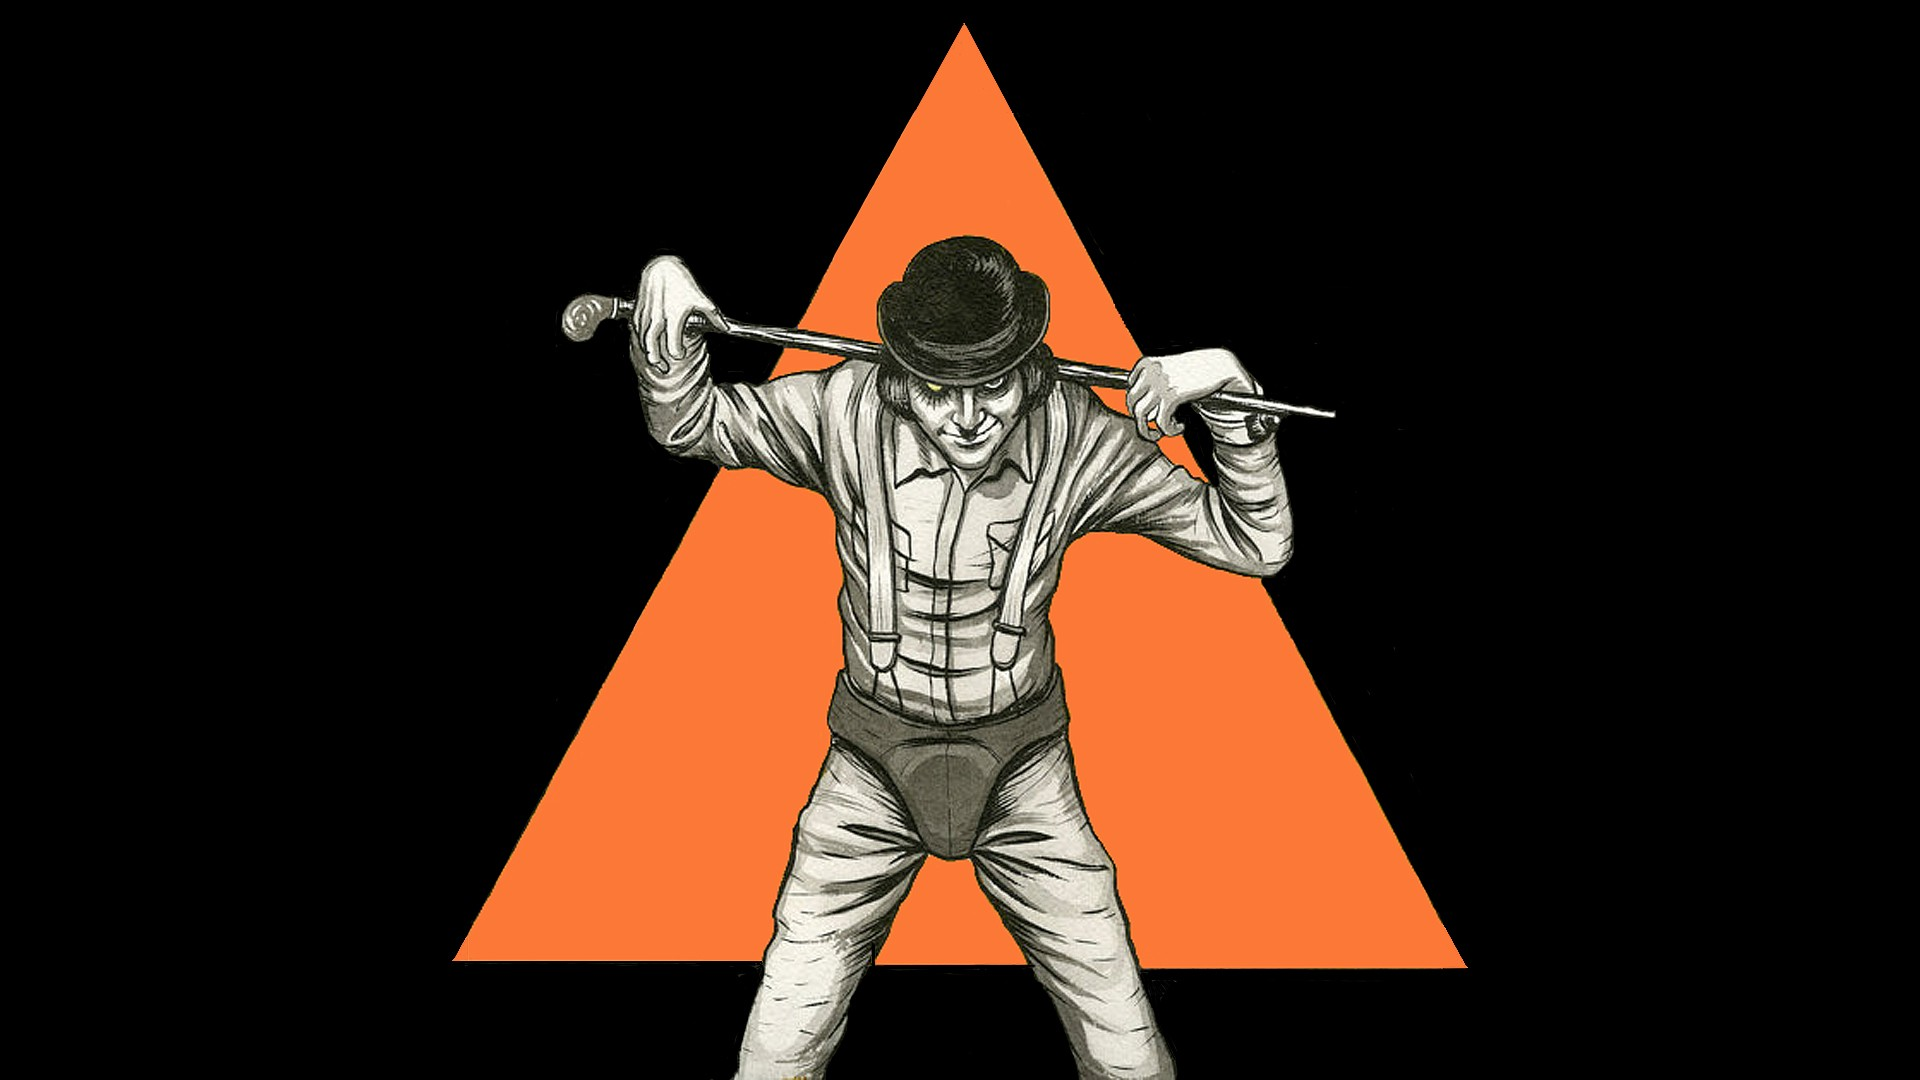 Alpha Coders Wallpaper Abyss Movie A Clockwork Orange 429687 A Clockwork Orange Wallpaper 1920x1080